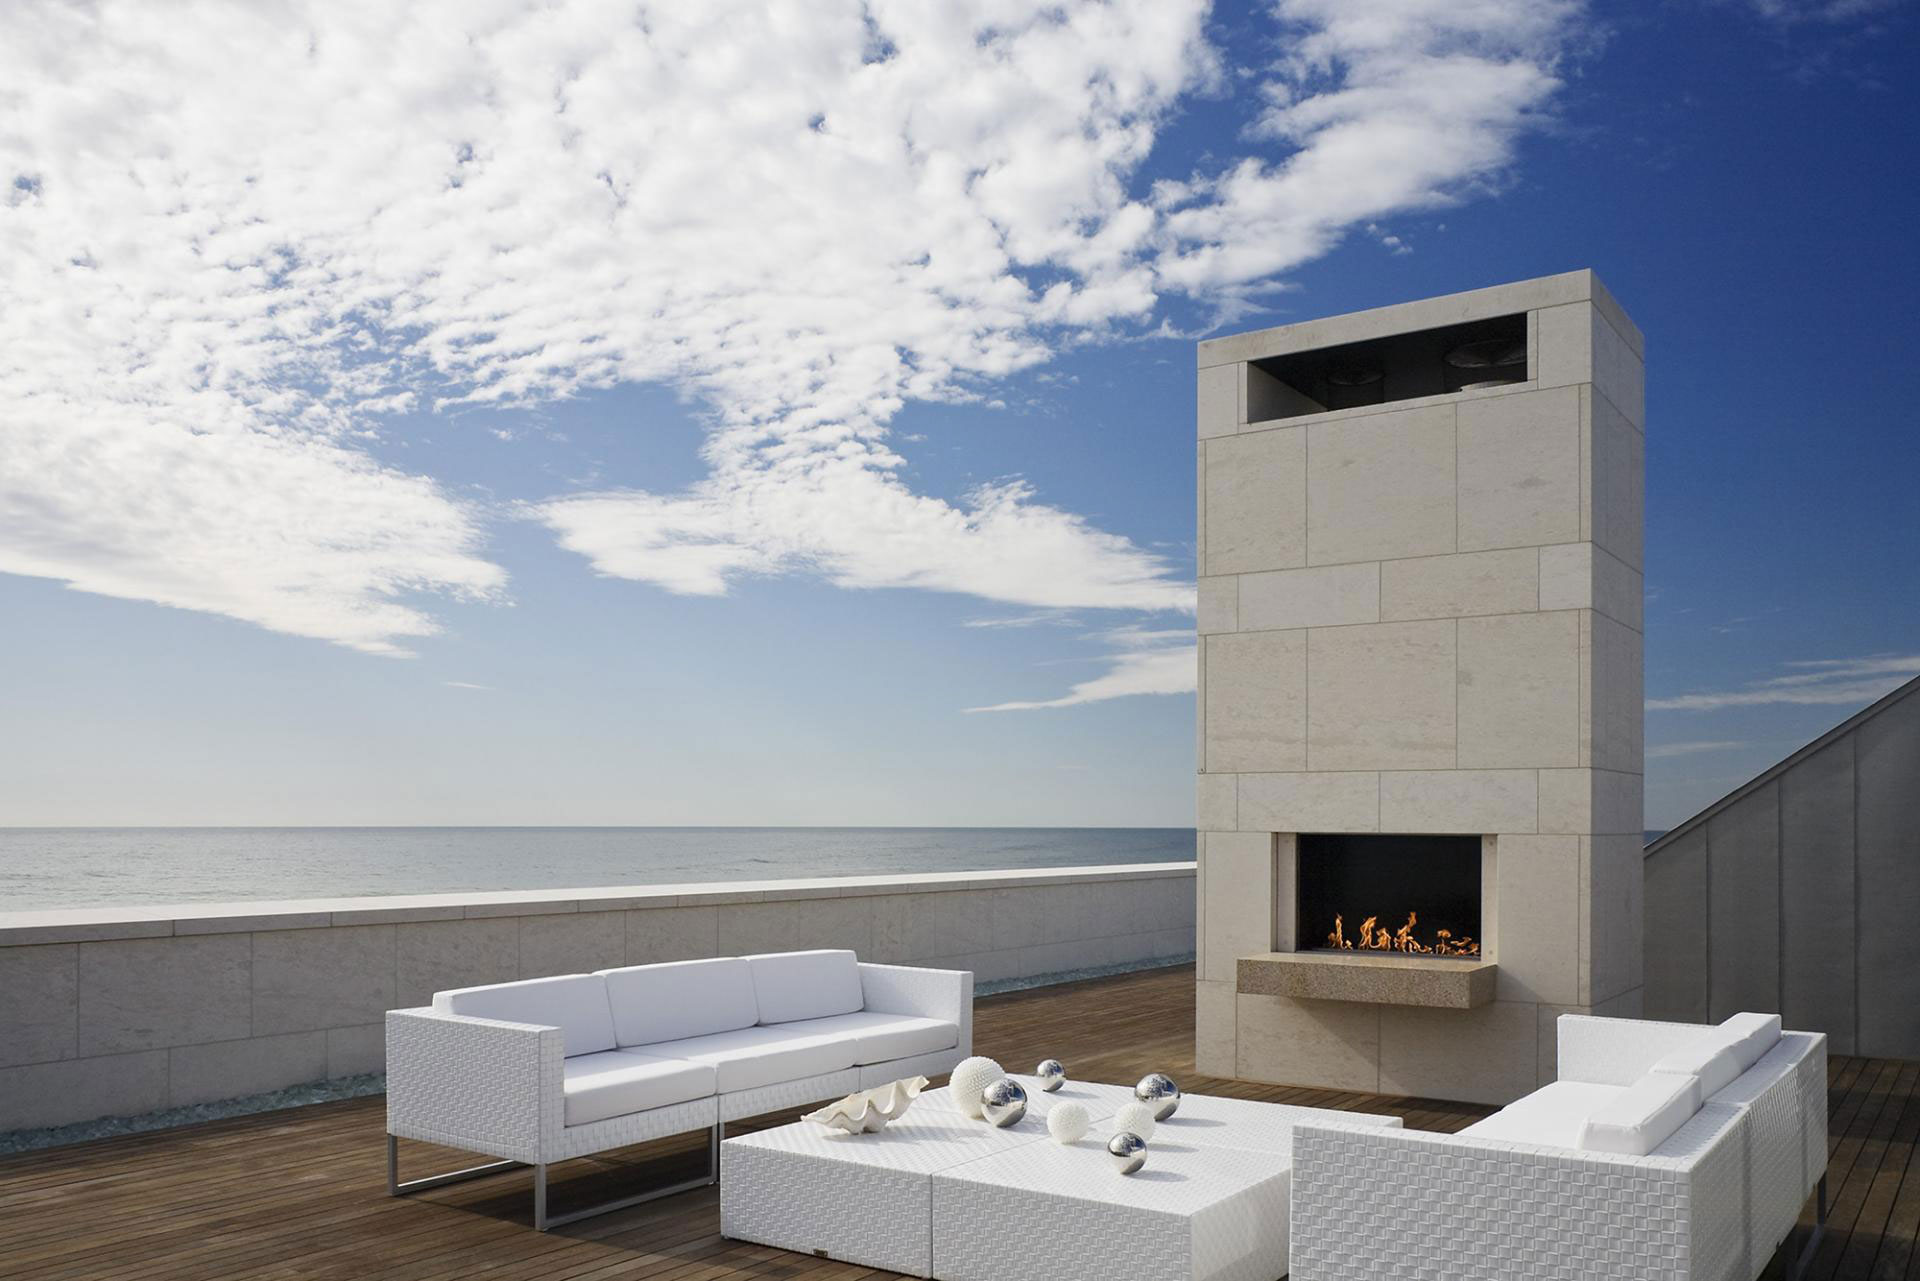 Roof terrace outdoor fireplace furniture summer retreat for Modern beach house furniture